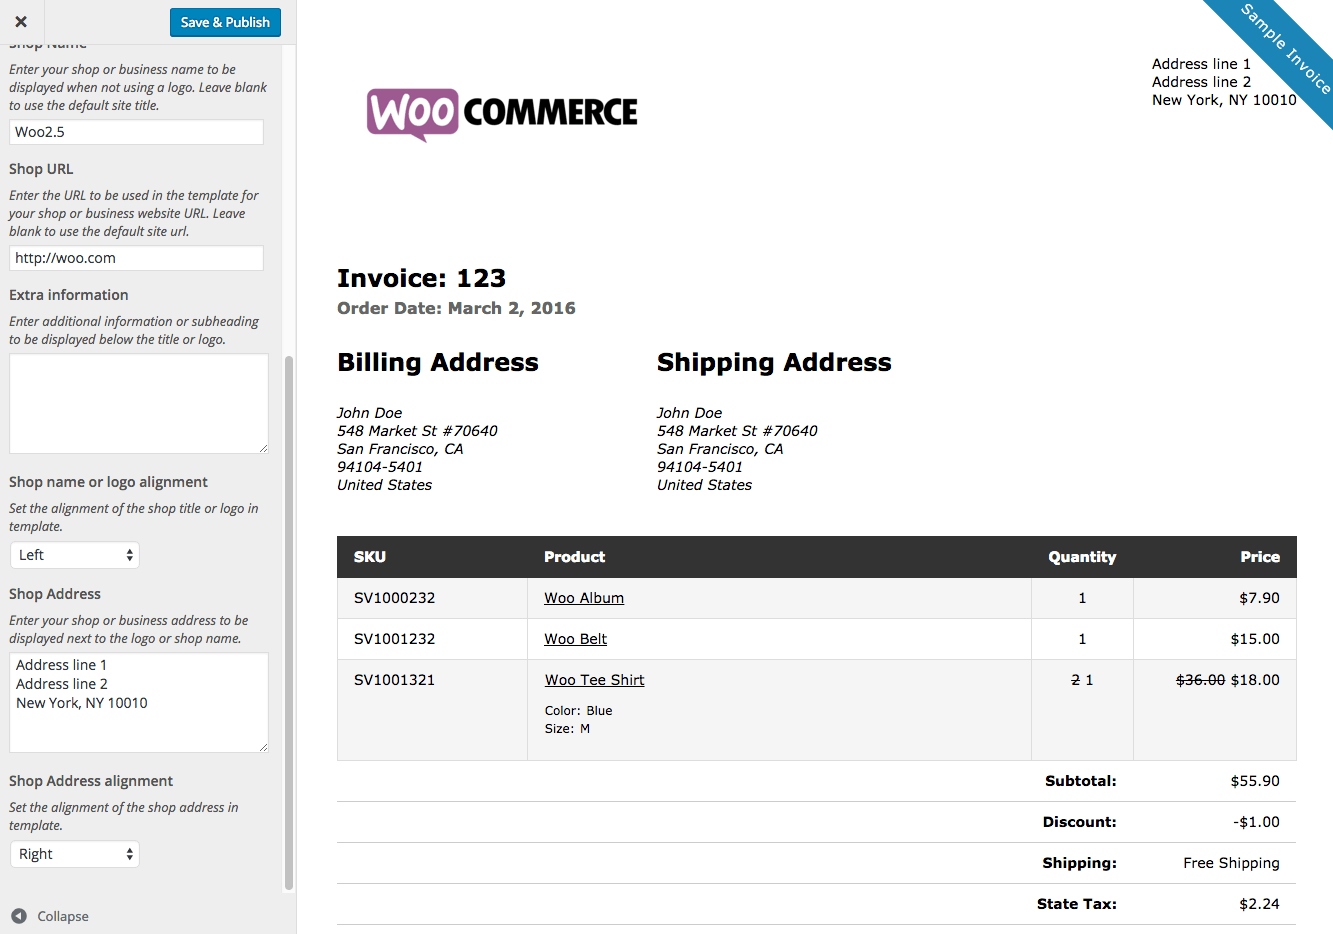 Patriotexpressus  Scenic Woocommerce Print Invoices Amp Packing Lists  Woocommerce Docs With Exciting Woocommerce Print Invoices  Packing Lists Customizer With Archaic I Receipt Also How To Do Certified Mail With Return Receipt In Addition Lumper Receipt Form And Receipt Tracking Apps As Well As Scanners For Receipts Additionally Cheese Cake Receipt From Docswoocommercecom With Patriotexpressus  Exciting Woocommerce Print Invoices Amp Packing Lists  Woocommerce Docs With Archaic Woocommerce Print Invoices  Packing Lists Customizer And Scenic I Receipt Also How To Do Certified Mail With Return Receipt In Addition Lumper Receipt Form From Docswoocommercecom